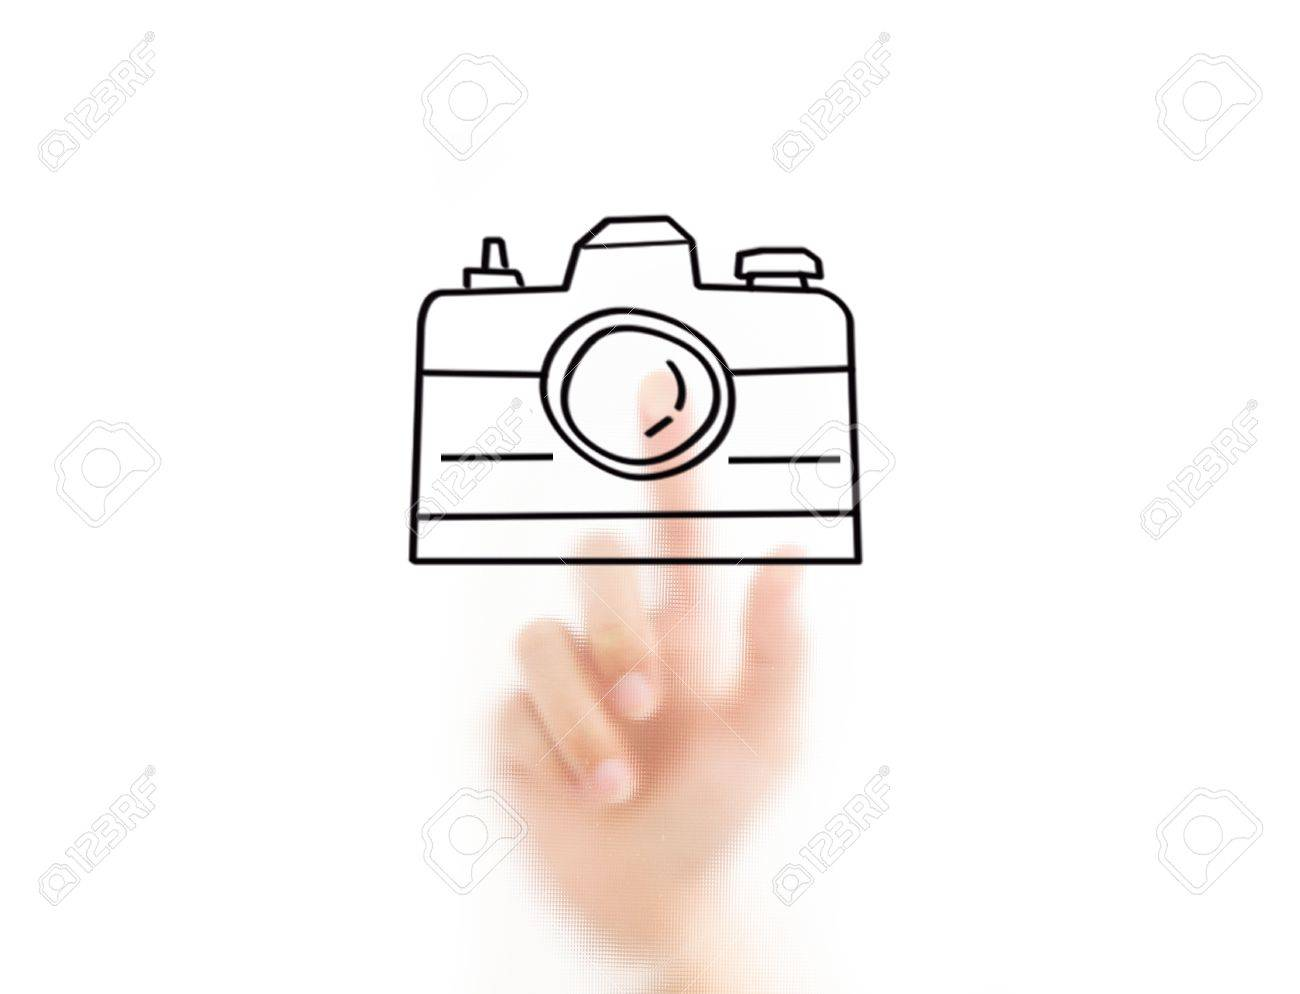 Man finger drawing earth shape Stock Photo - 10489460